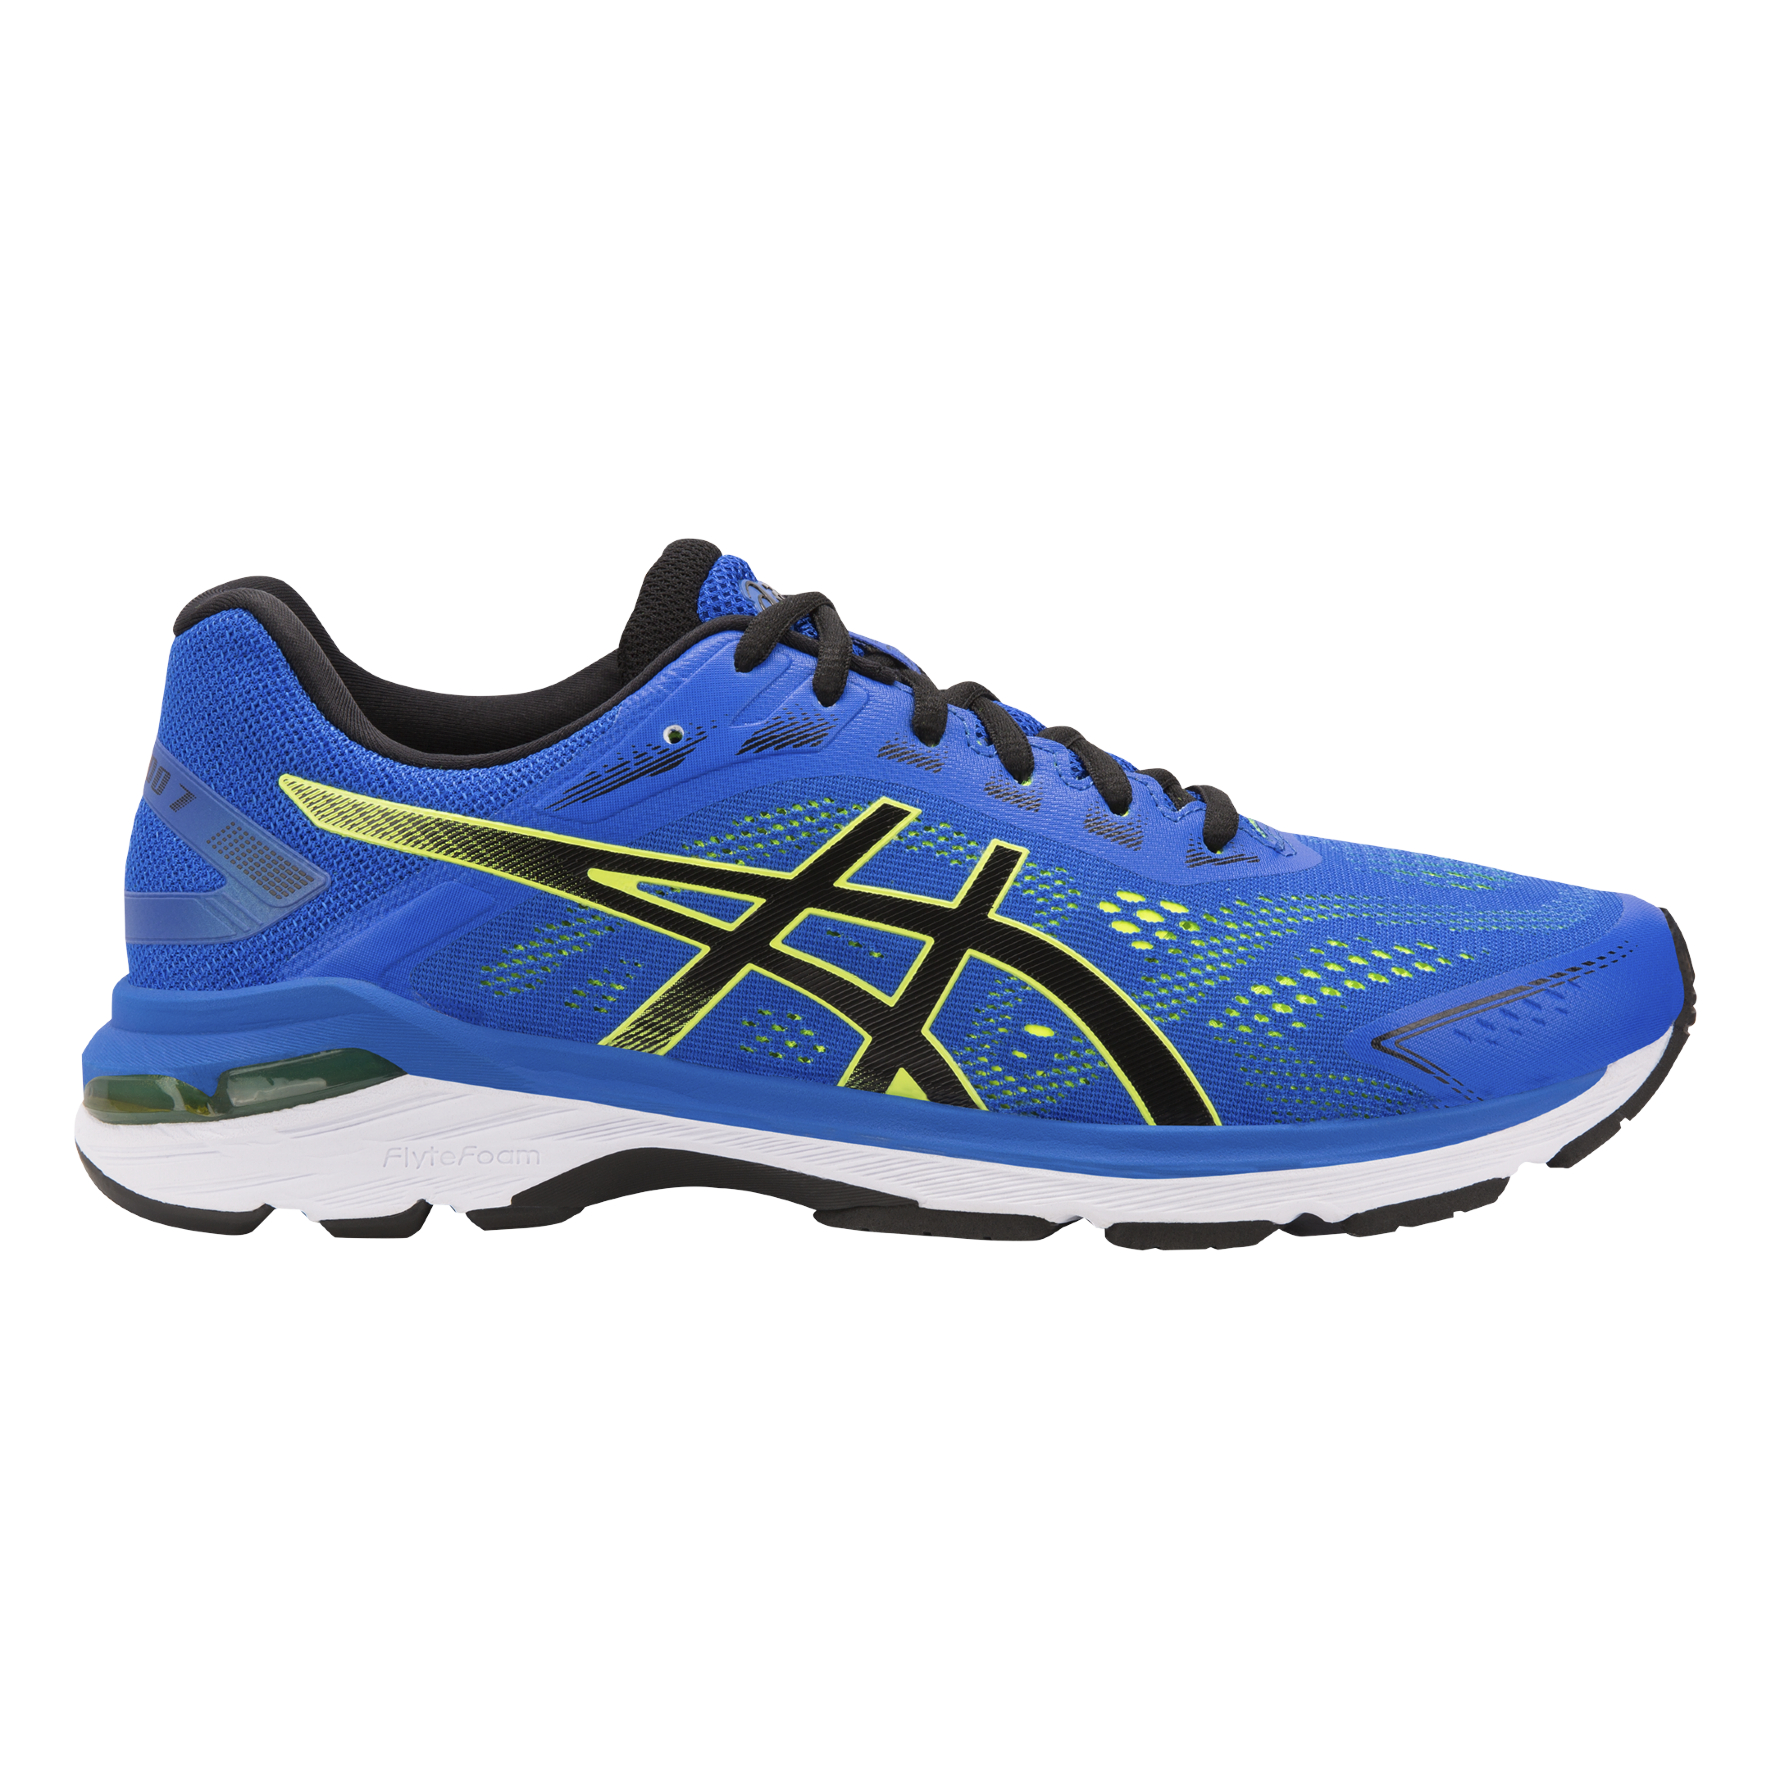 Asics GT-2000 7 | Running shoes